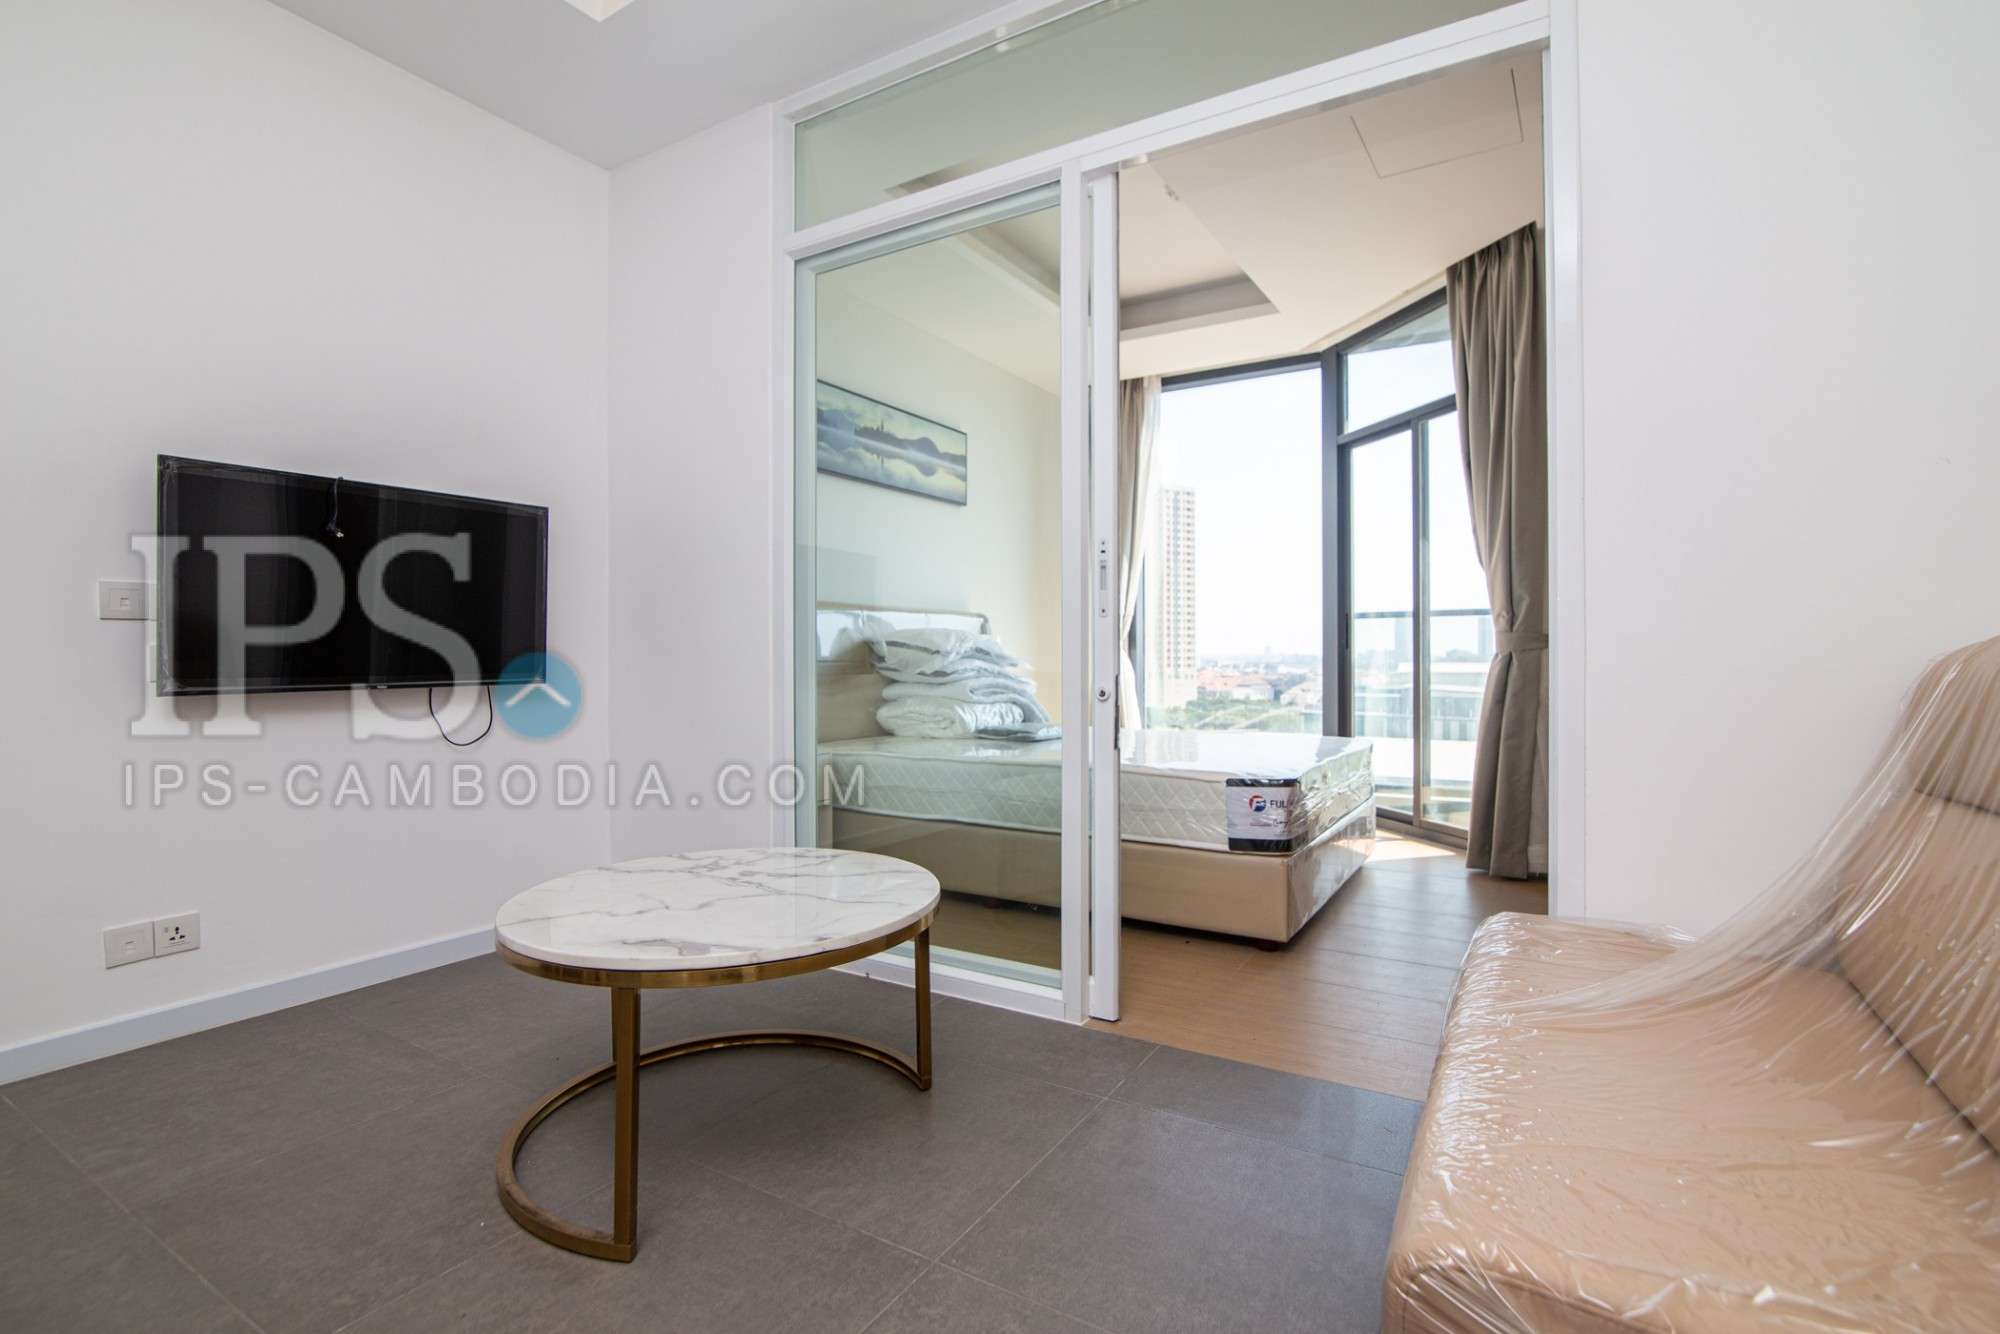 2 Bedroom Condo For Rent - Tonle Bassac, Chamkarmorn, Phnom Penh